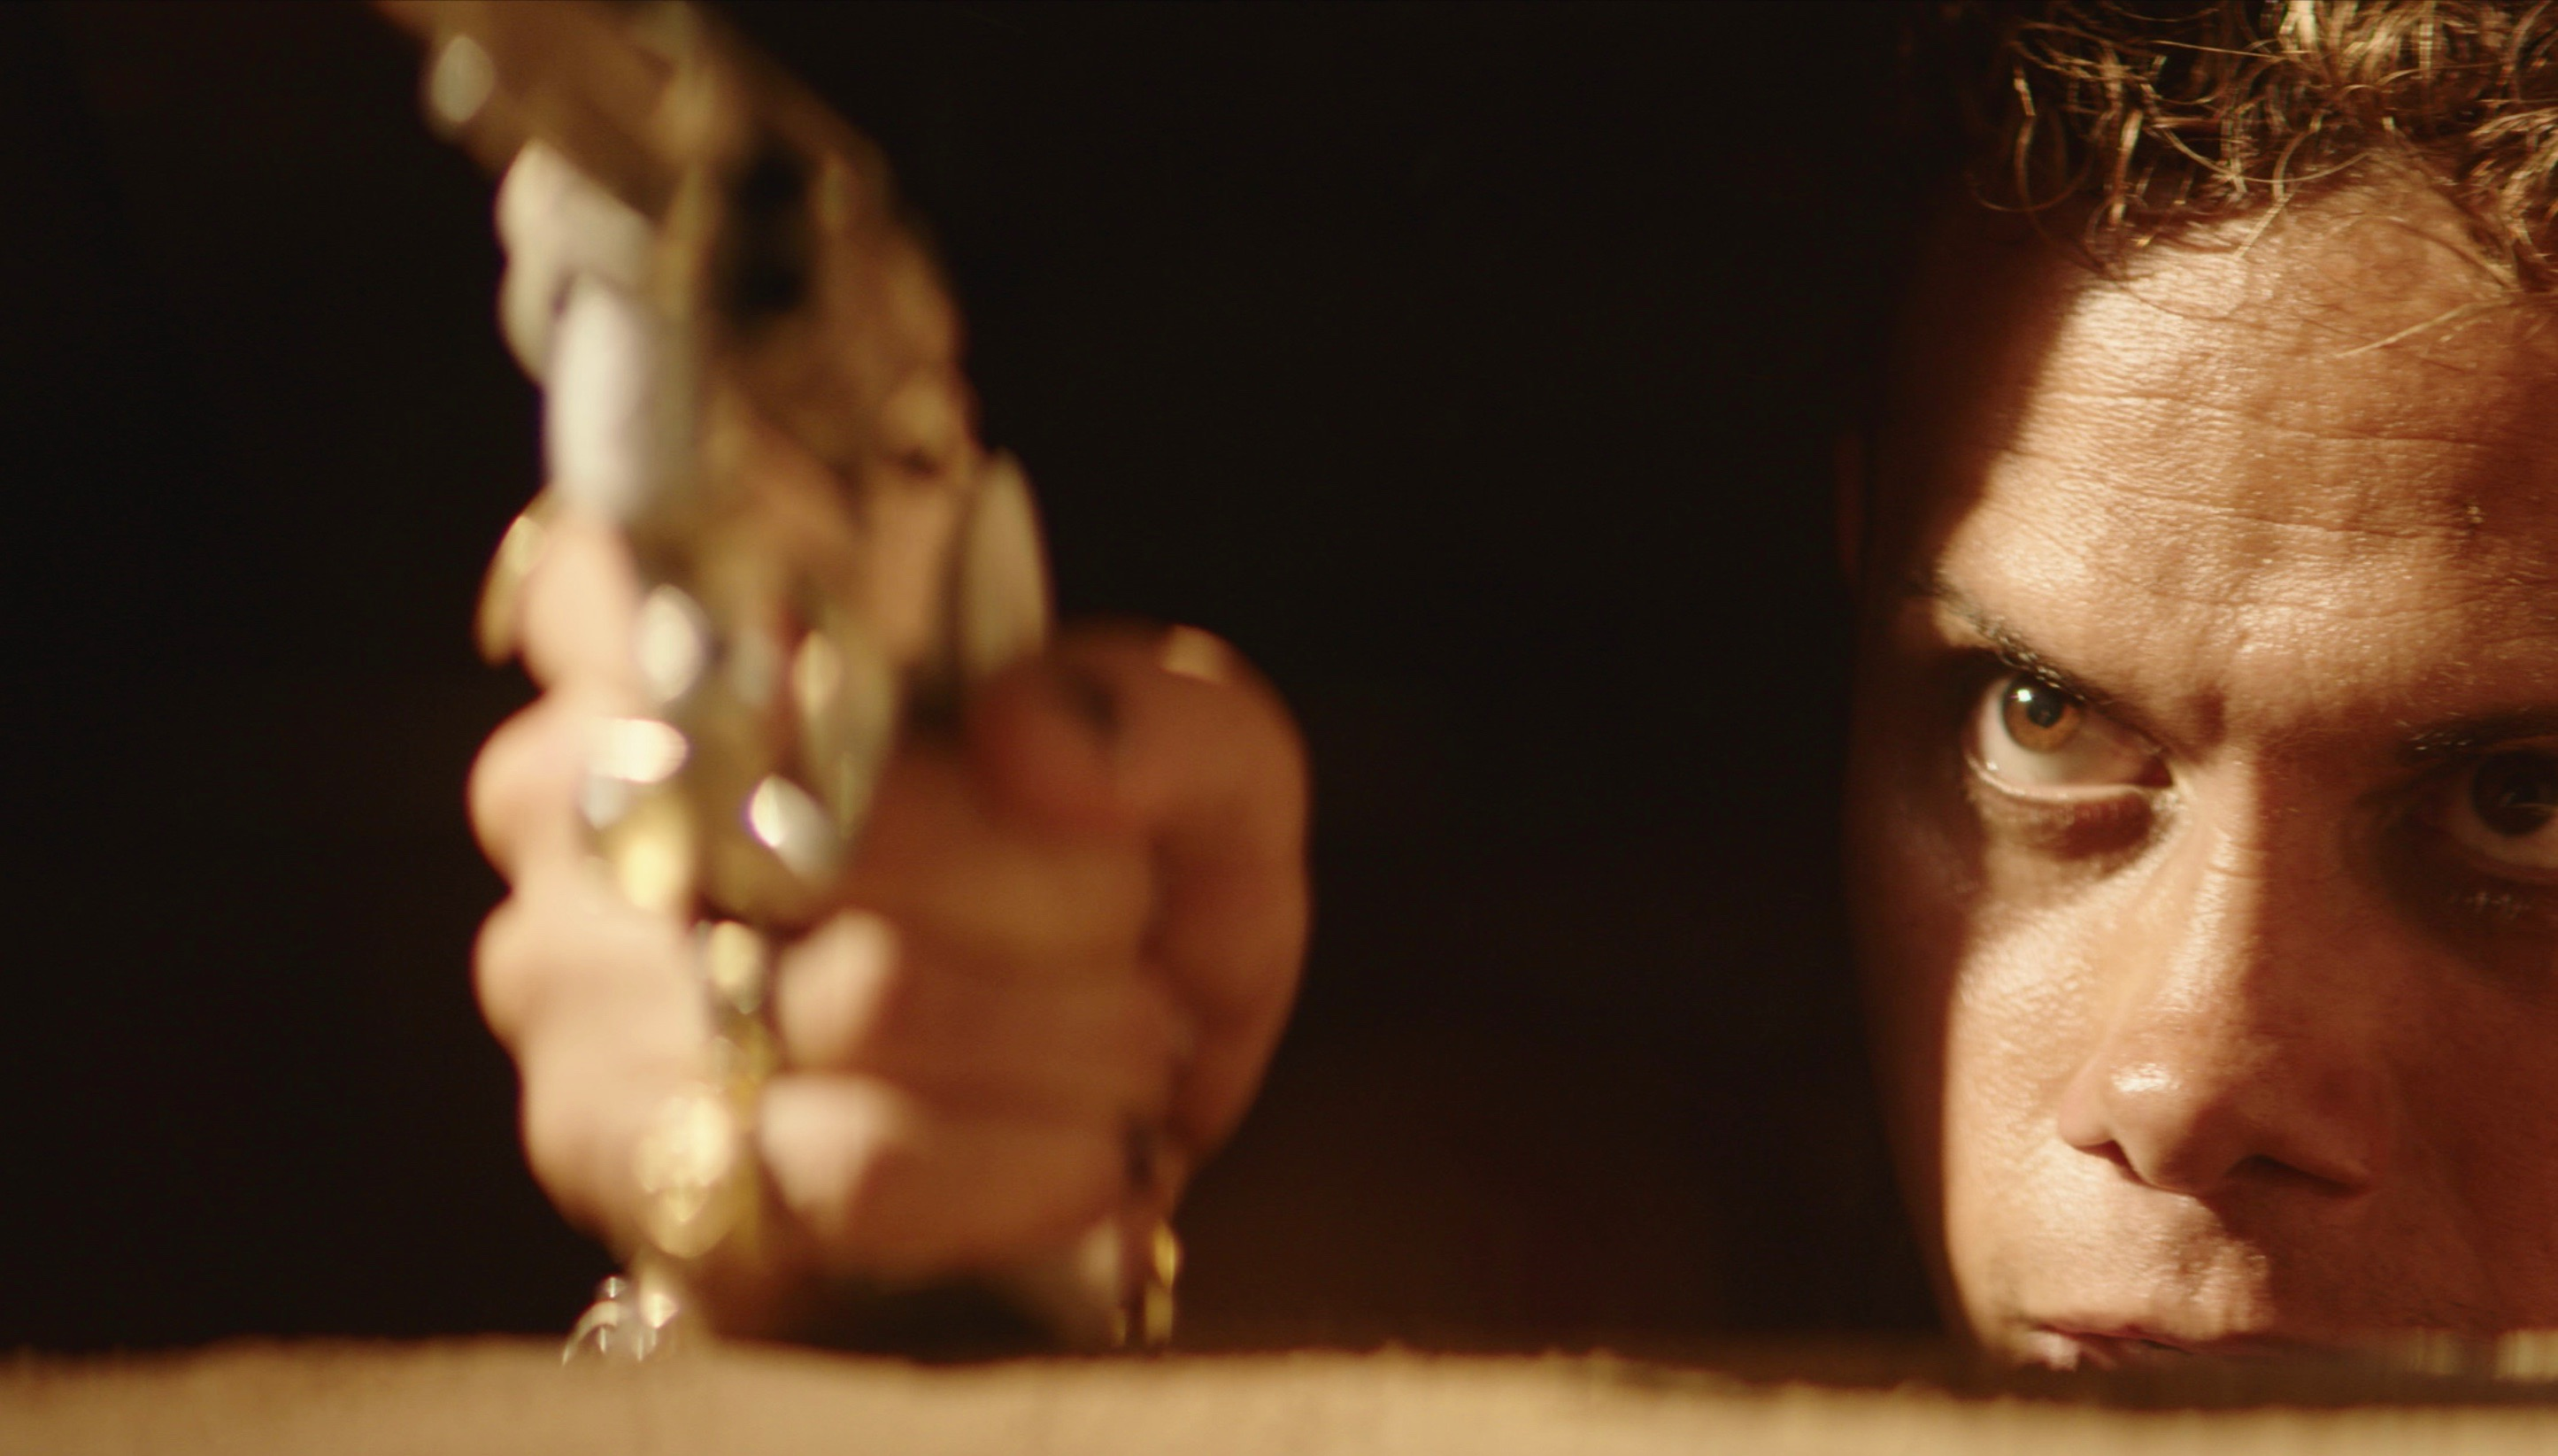 An extreme closeup of a glowering brown-eyed man peering up from a pit, pointing a shining handgun up at something above camera level.